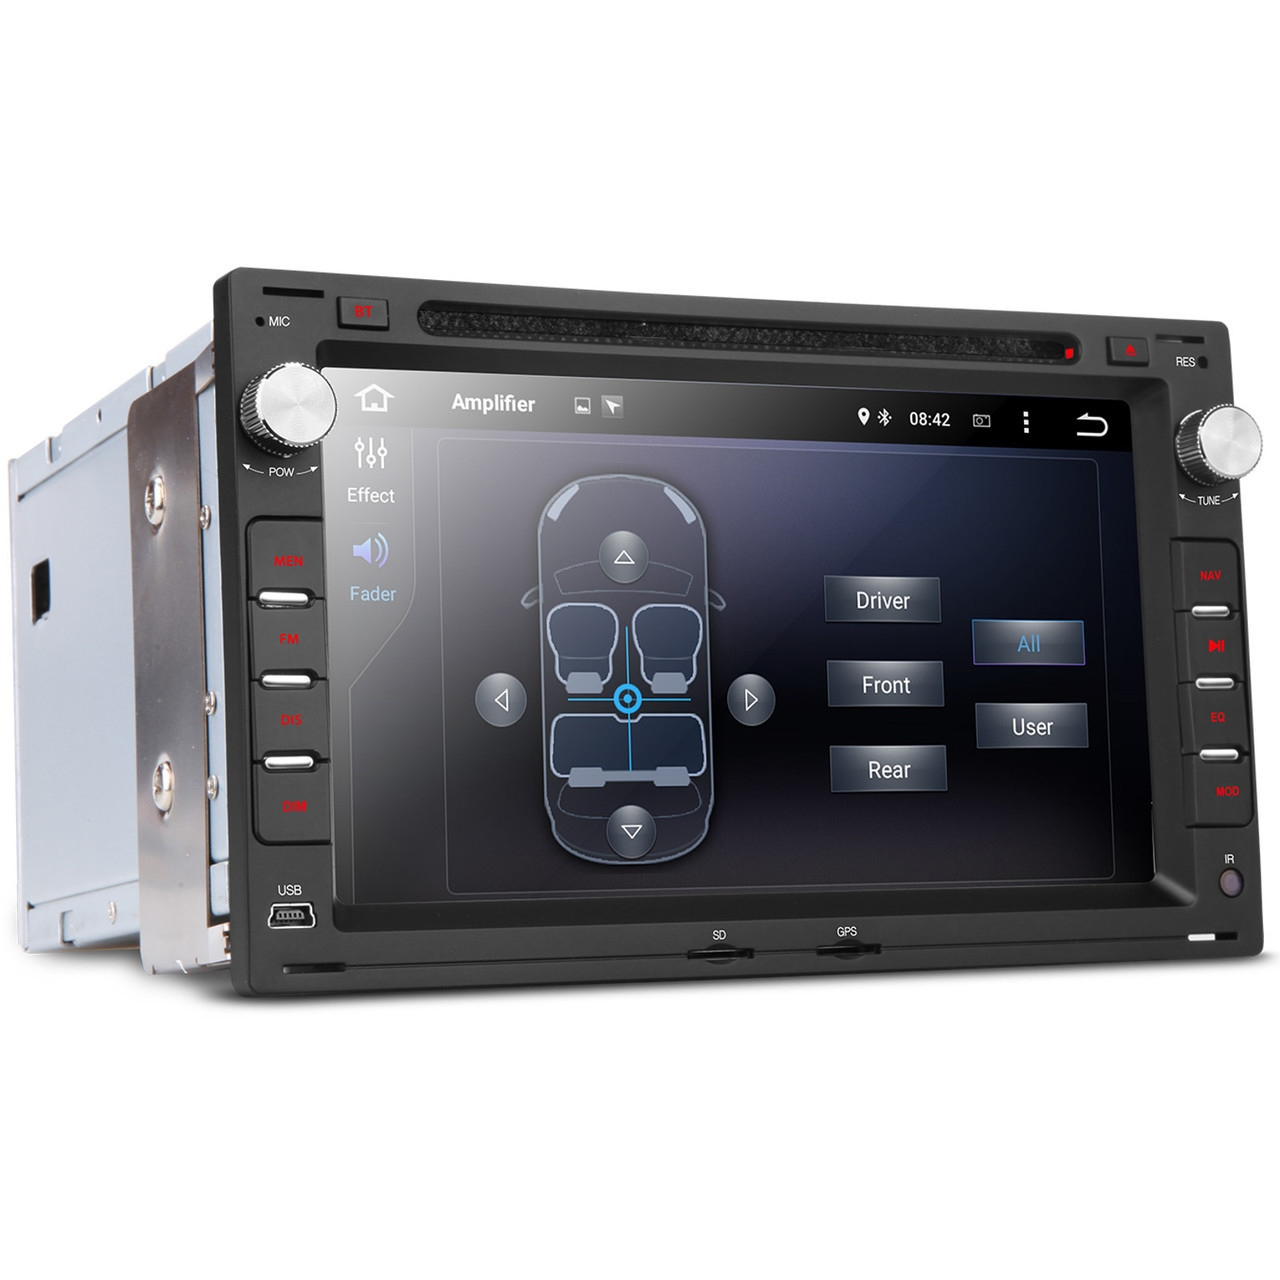 vw golf mk4 passat mk5 android 5 1 head unit radio stereo. Black Bedroom Furniture Sets. Home Design Ideas